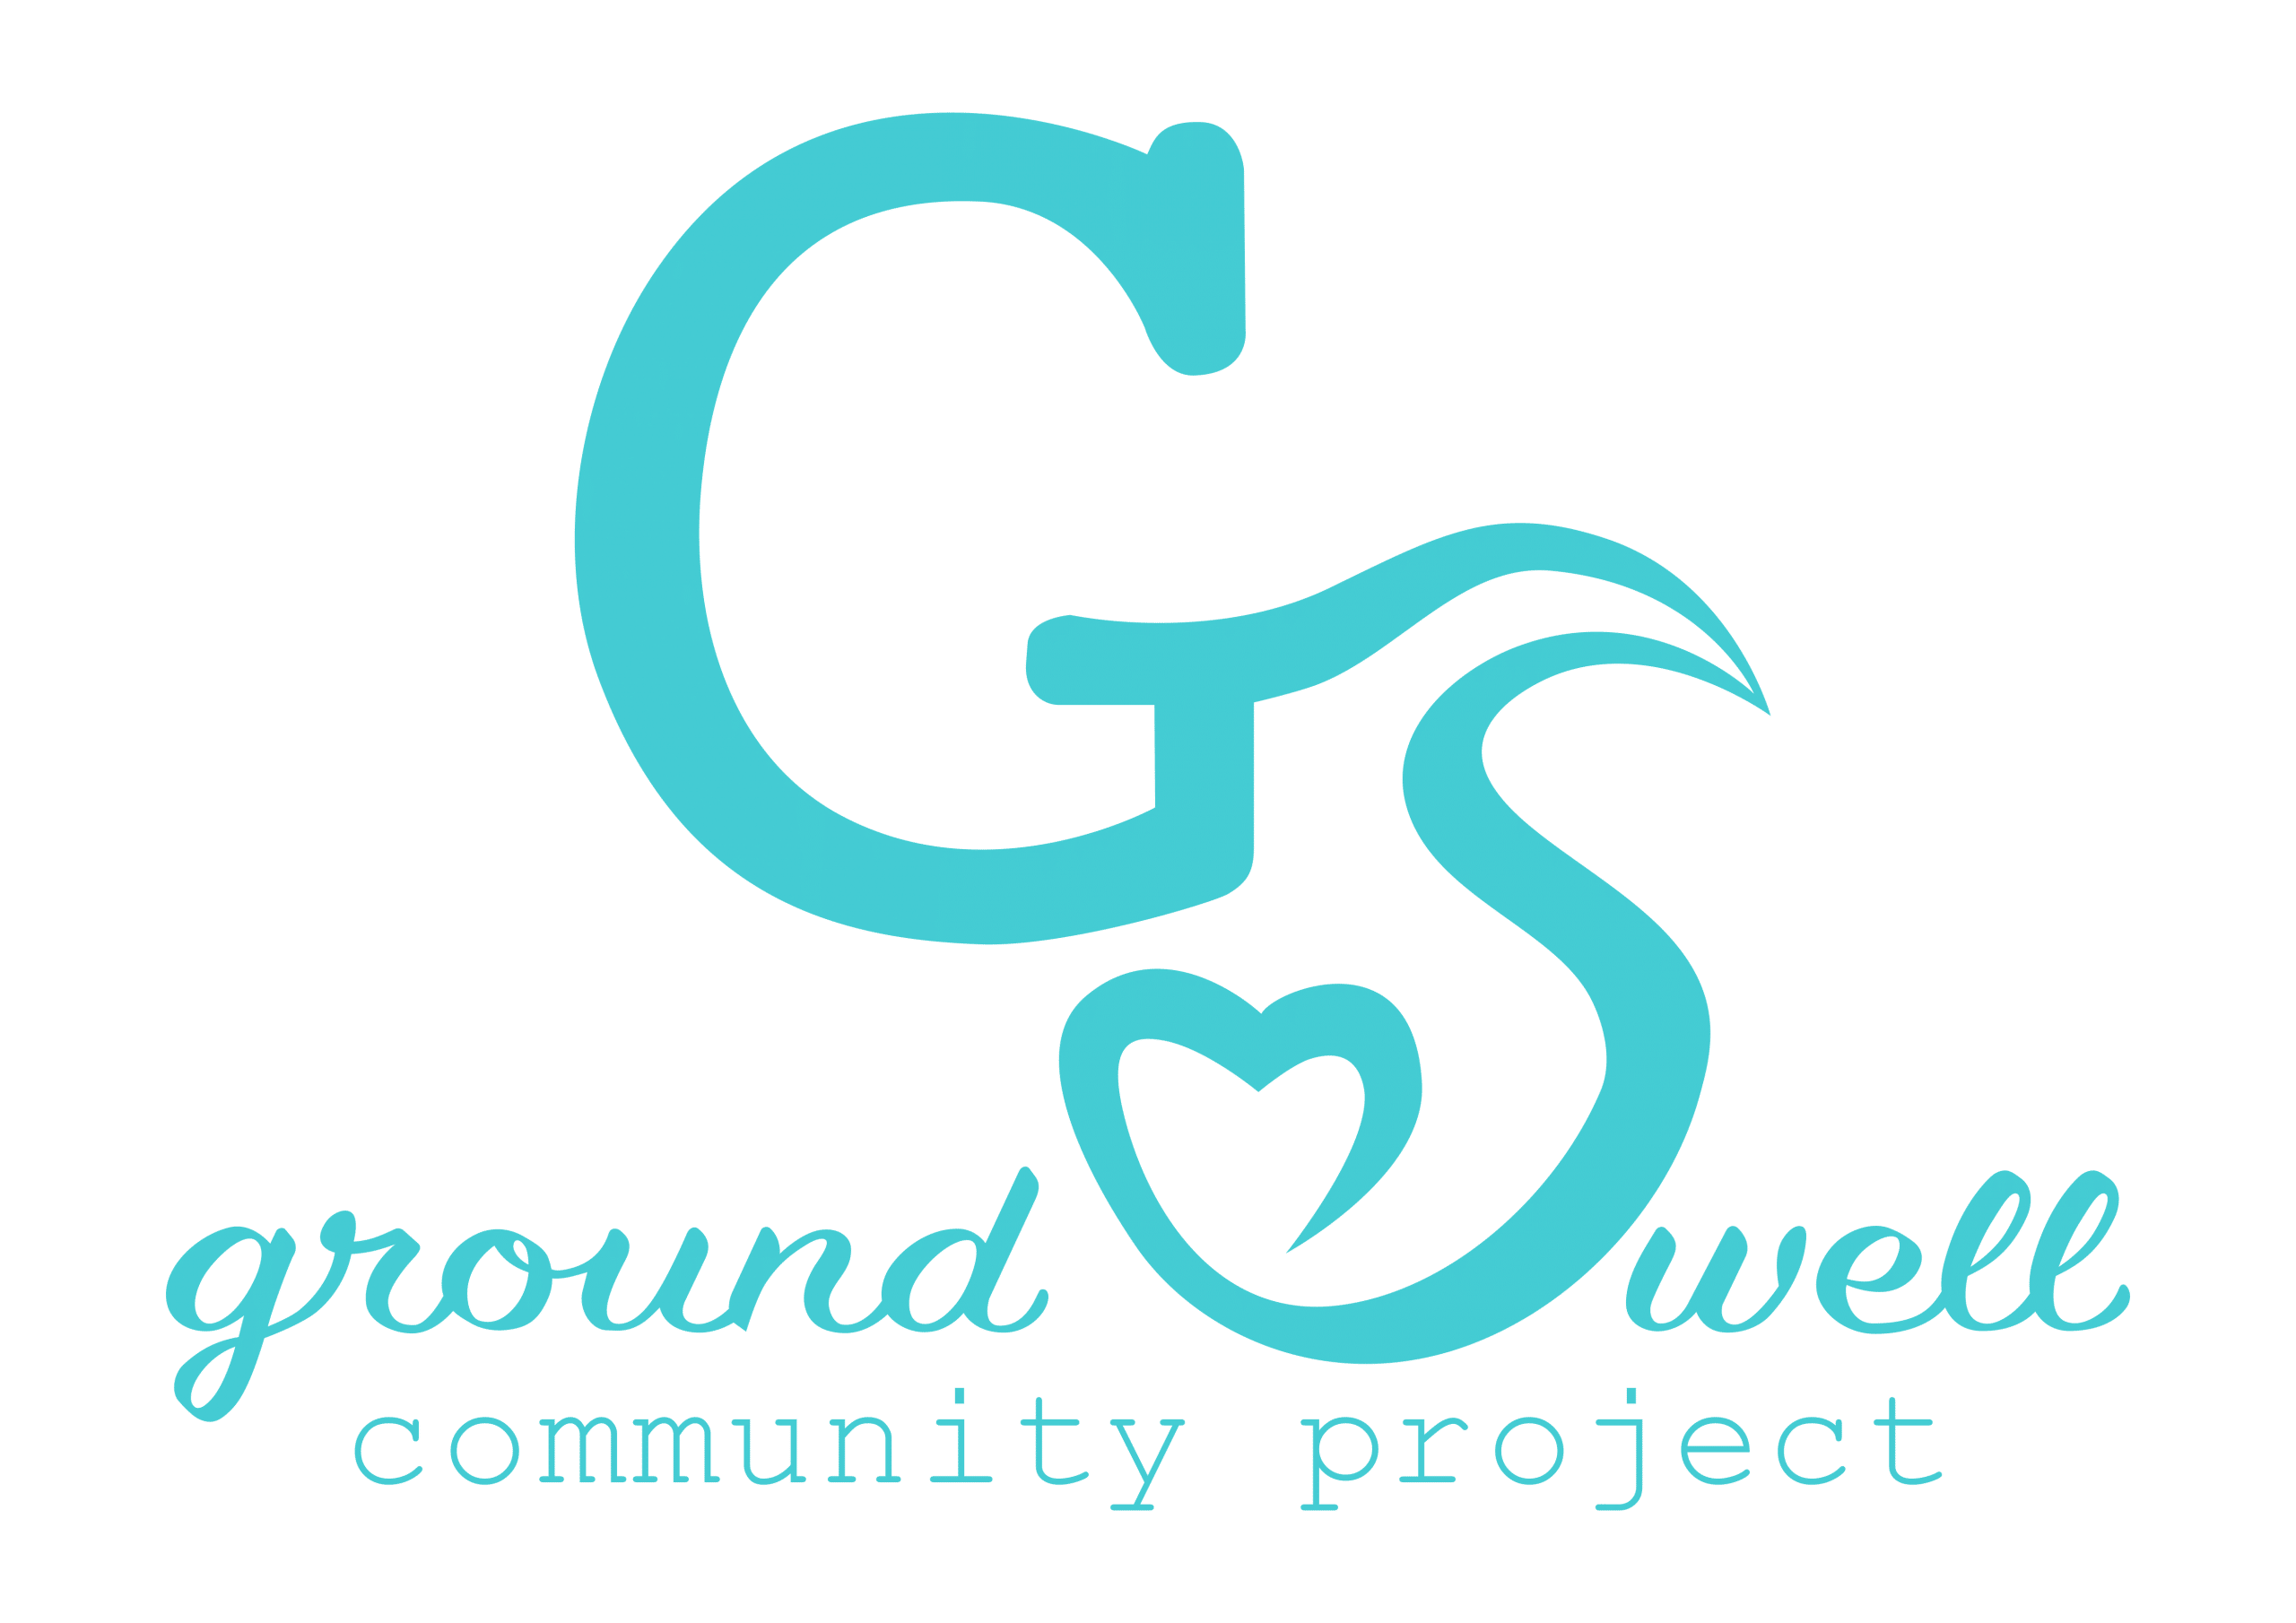 logo for Groundswell Community Project